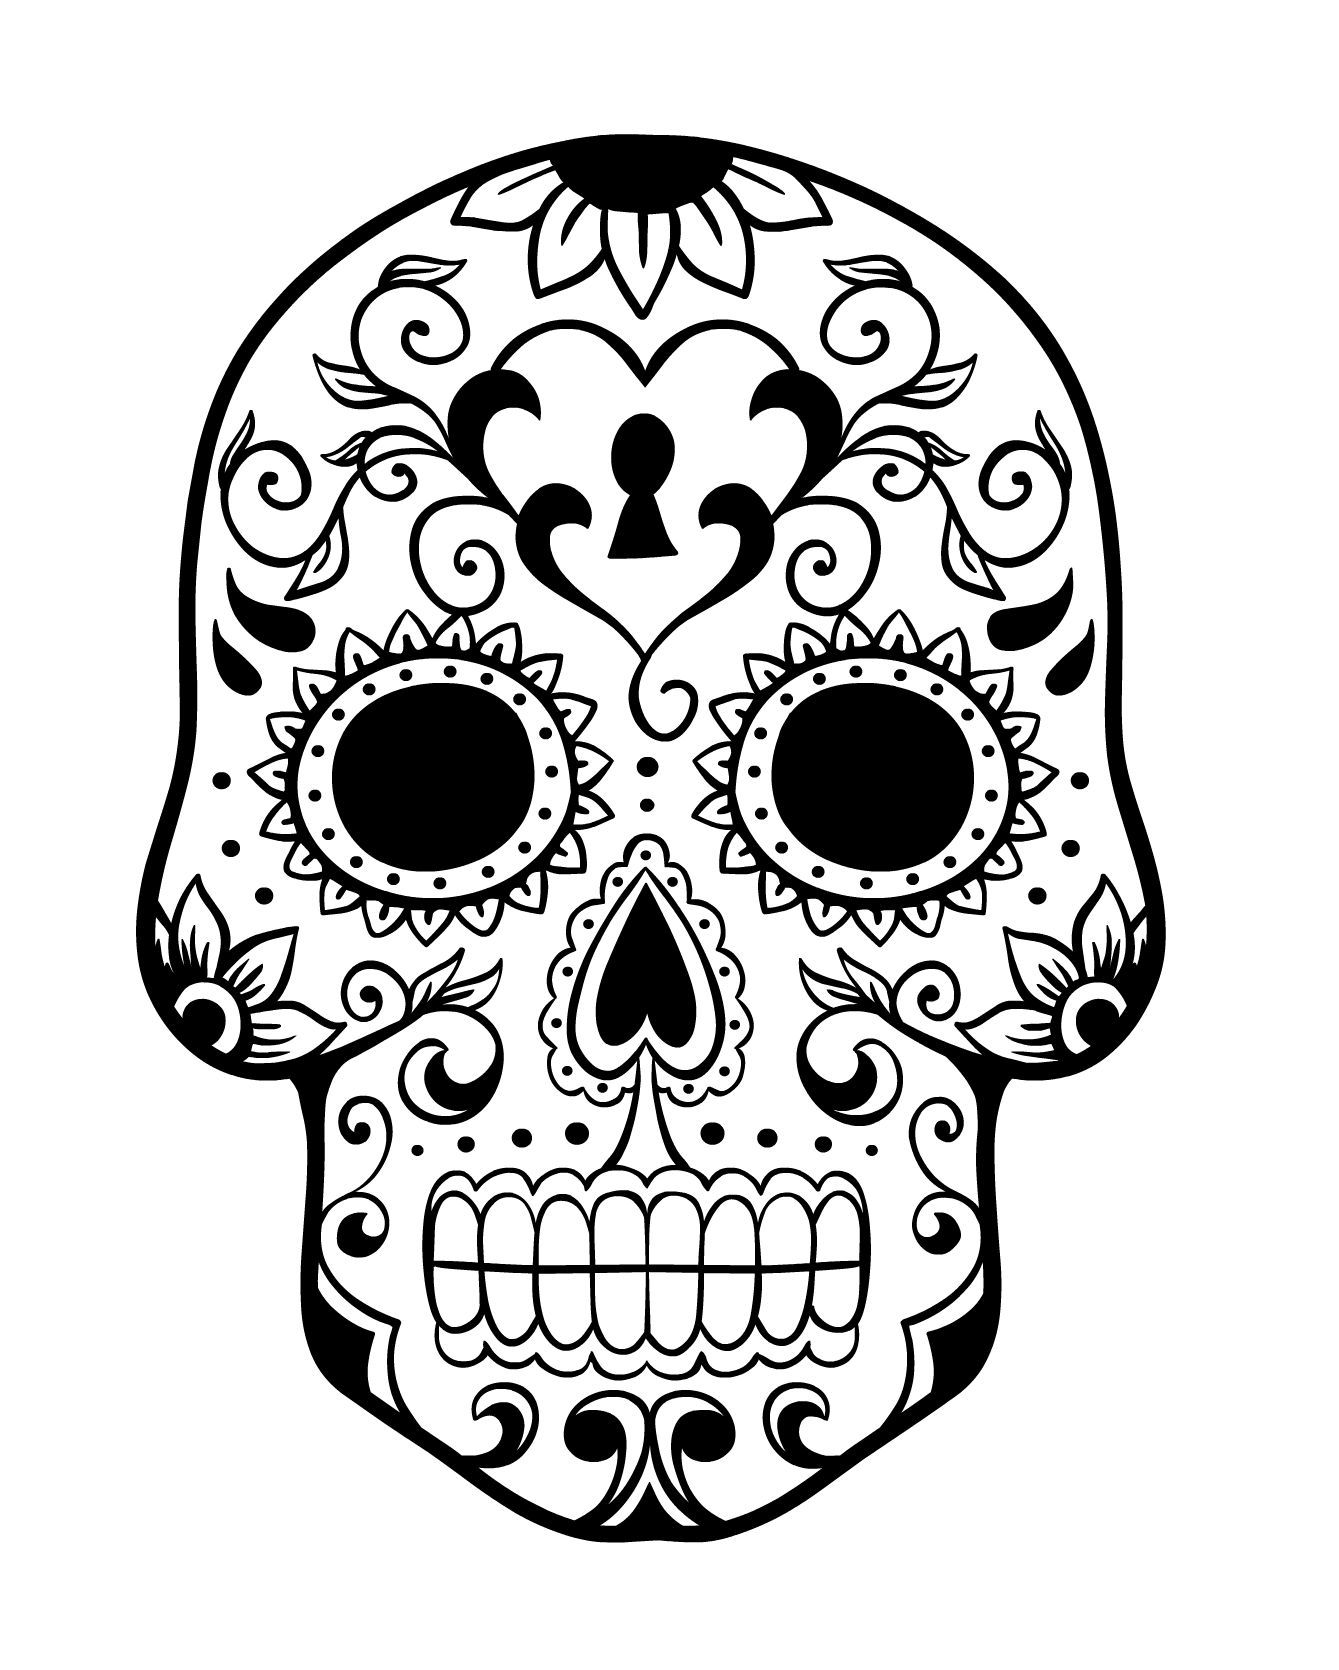 Day of the Dead Sugar Skull Coloring Page 4 | SugarSkull Obsession ...